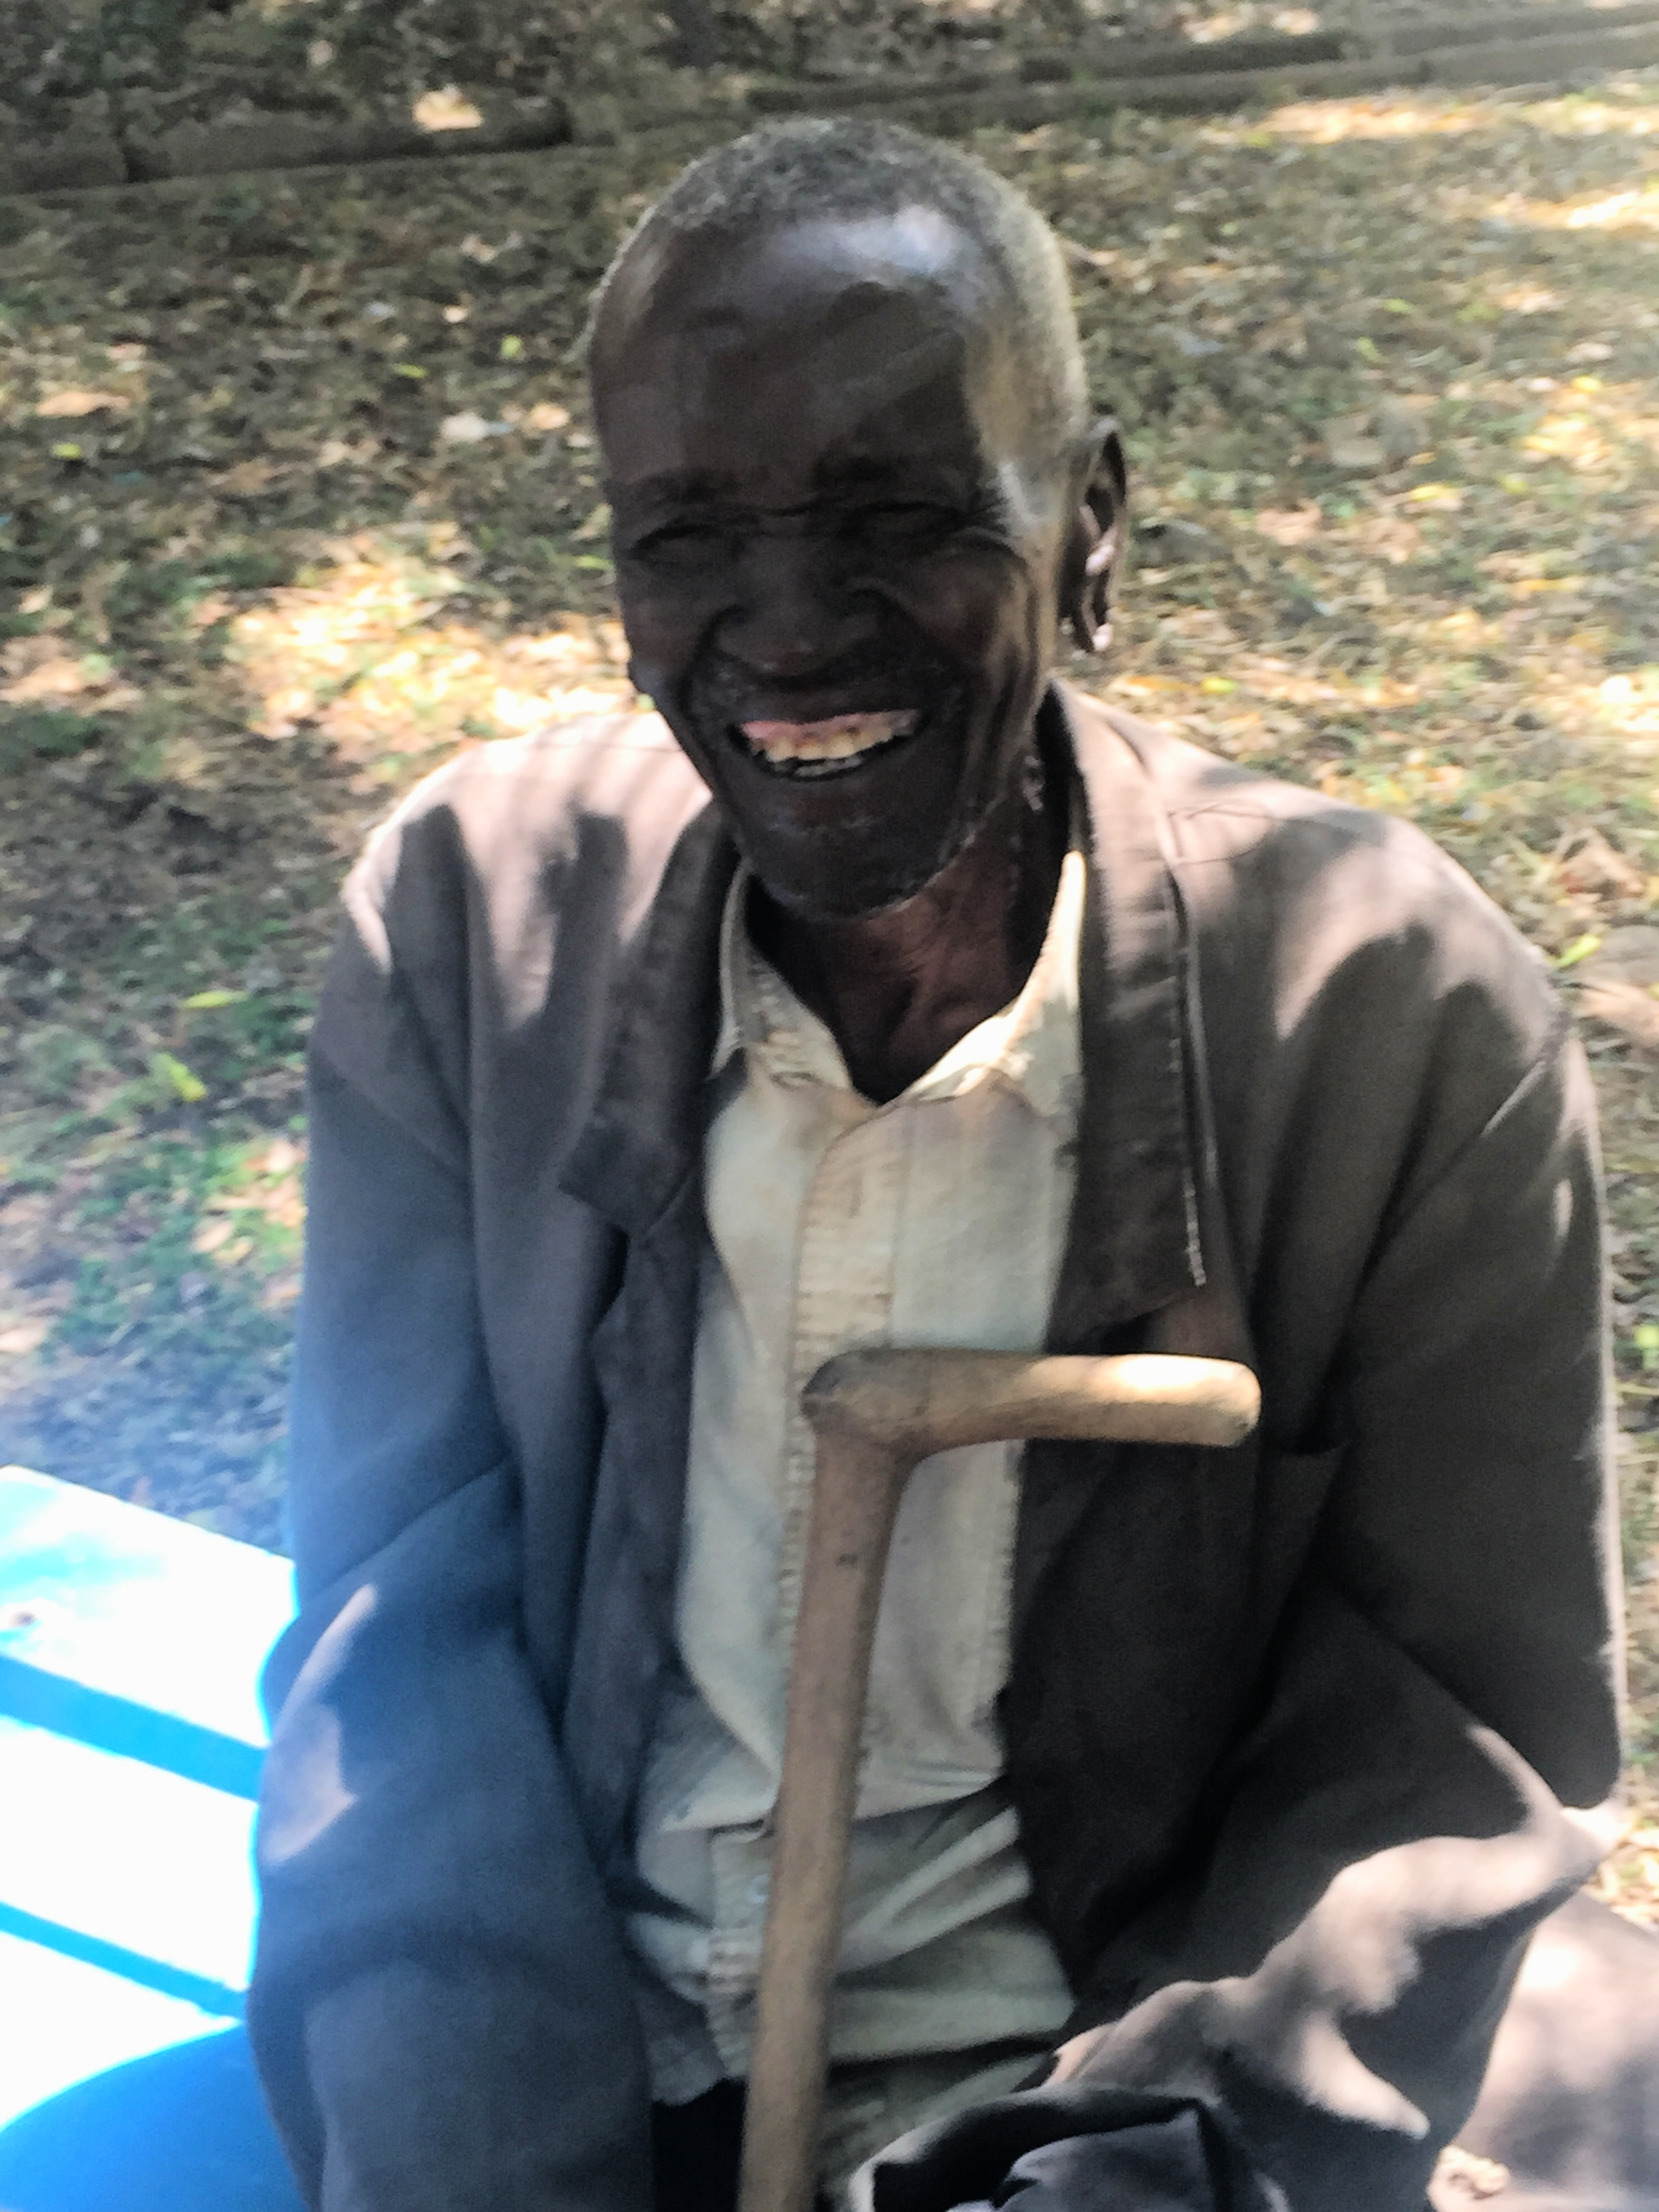 The cataract patient who said he could see a mzungu when his patch was removed.